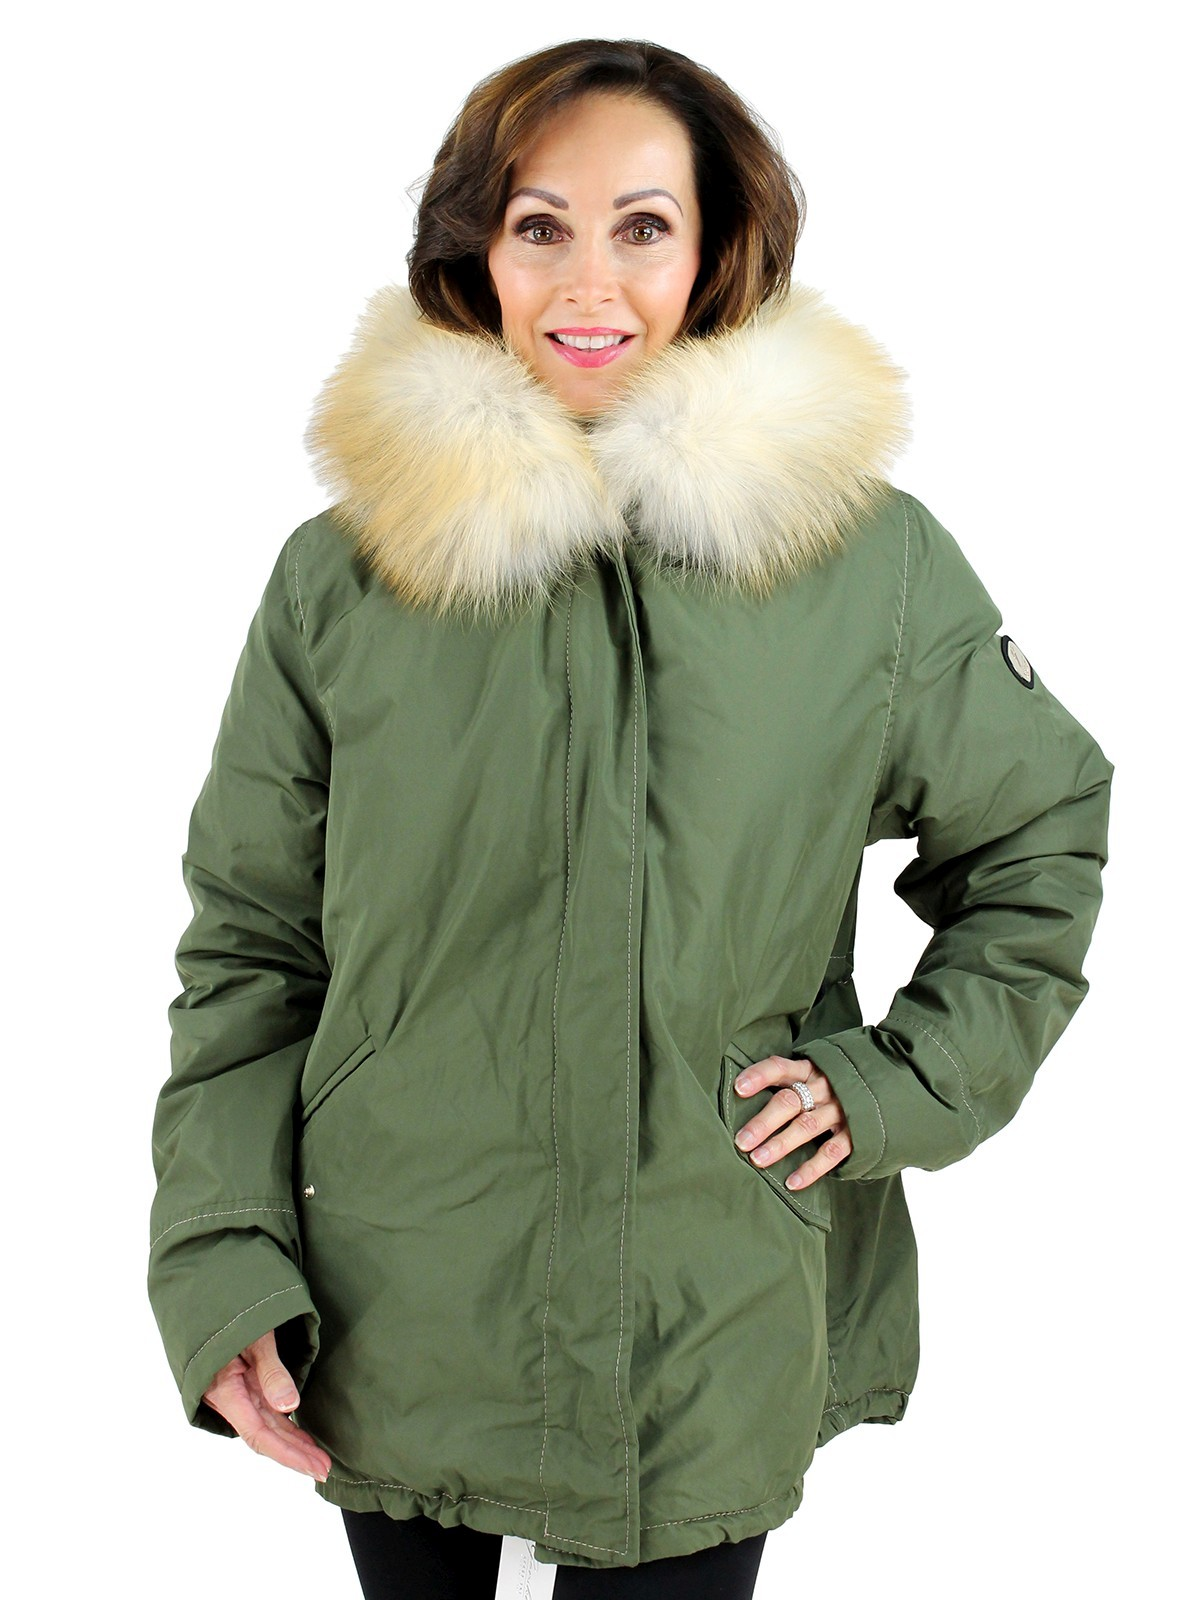 Gorski Woman's Sage Parka with Red Fox Fur Trimmed Hood